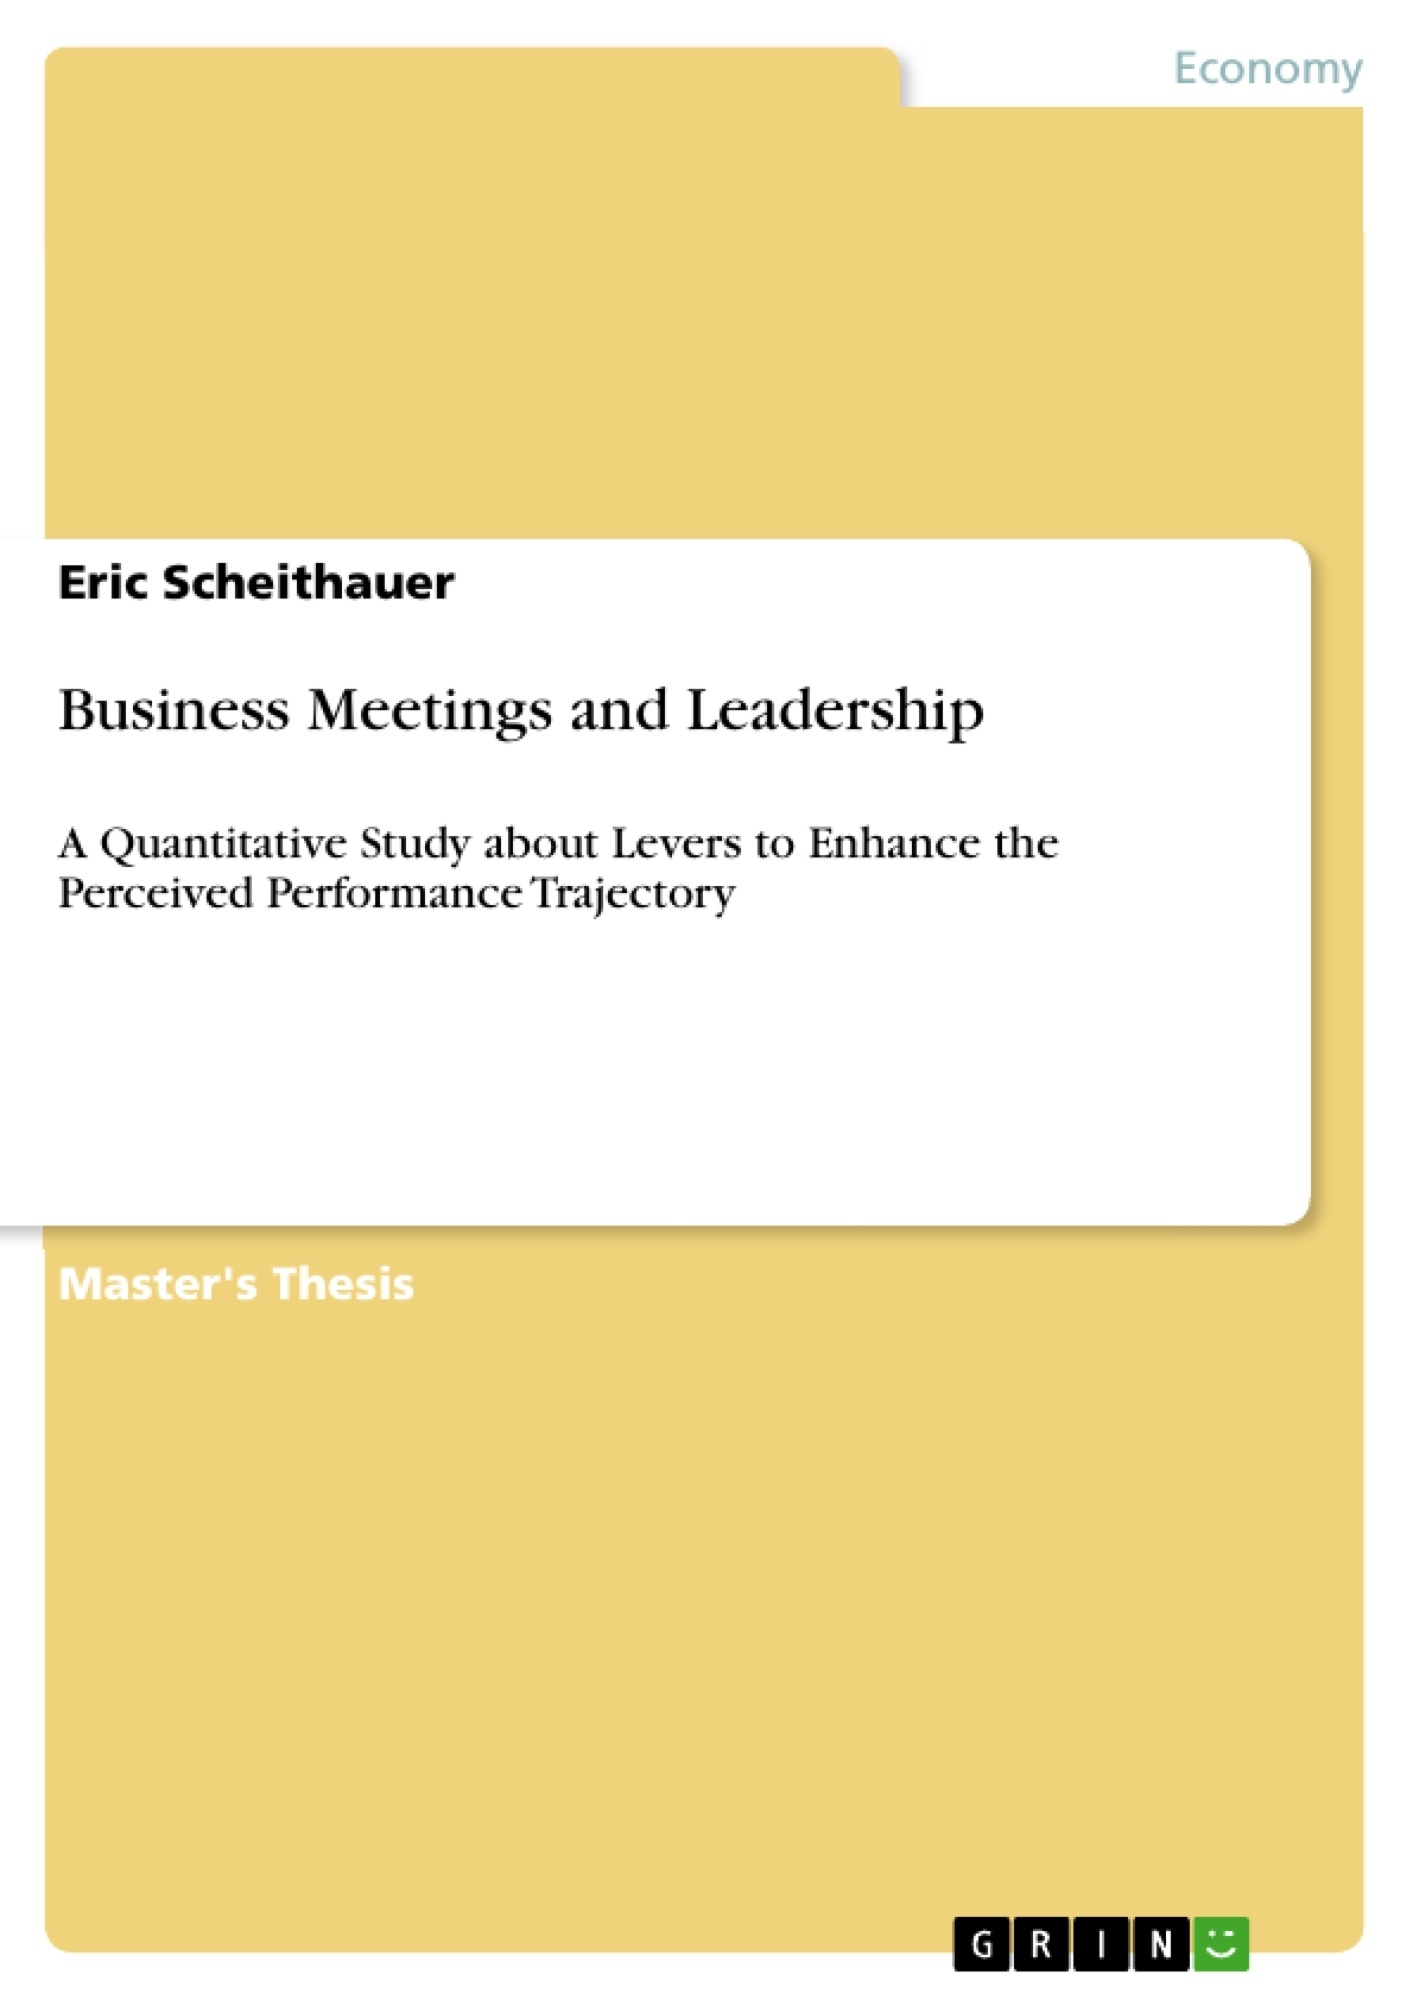 Title: Business Meetings and Leadership